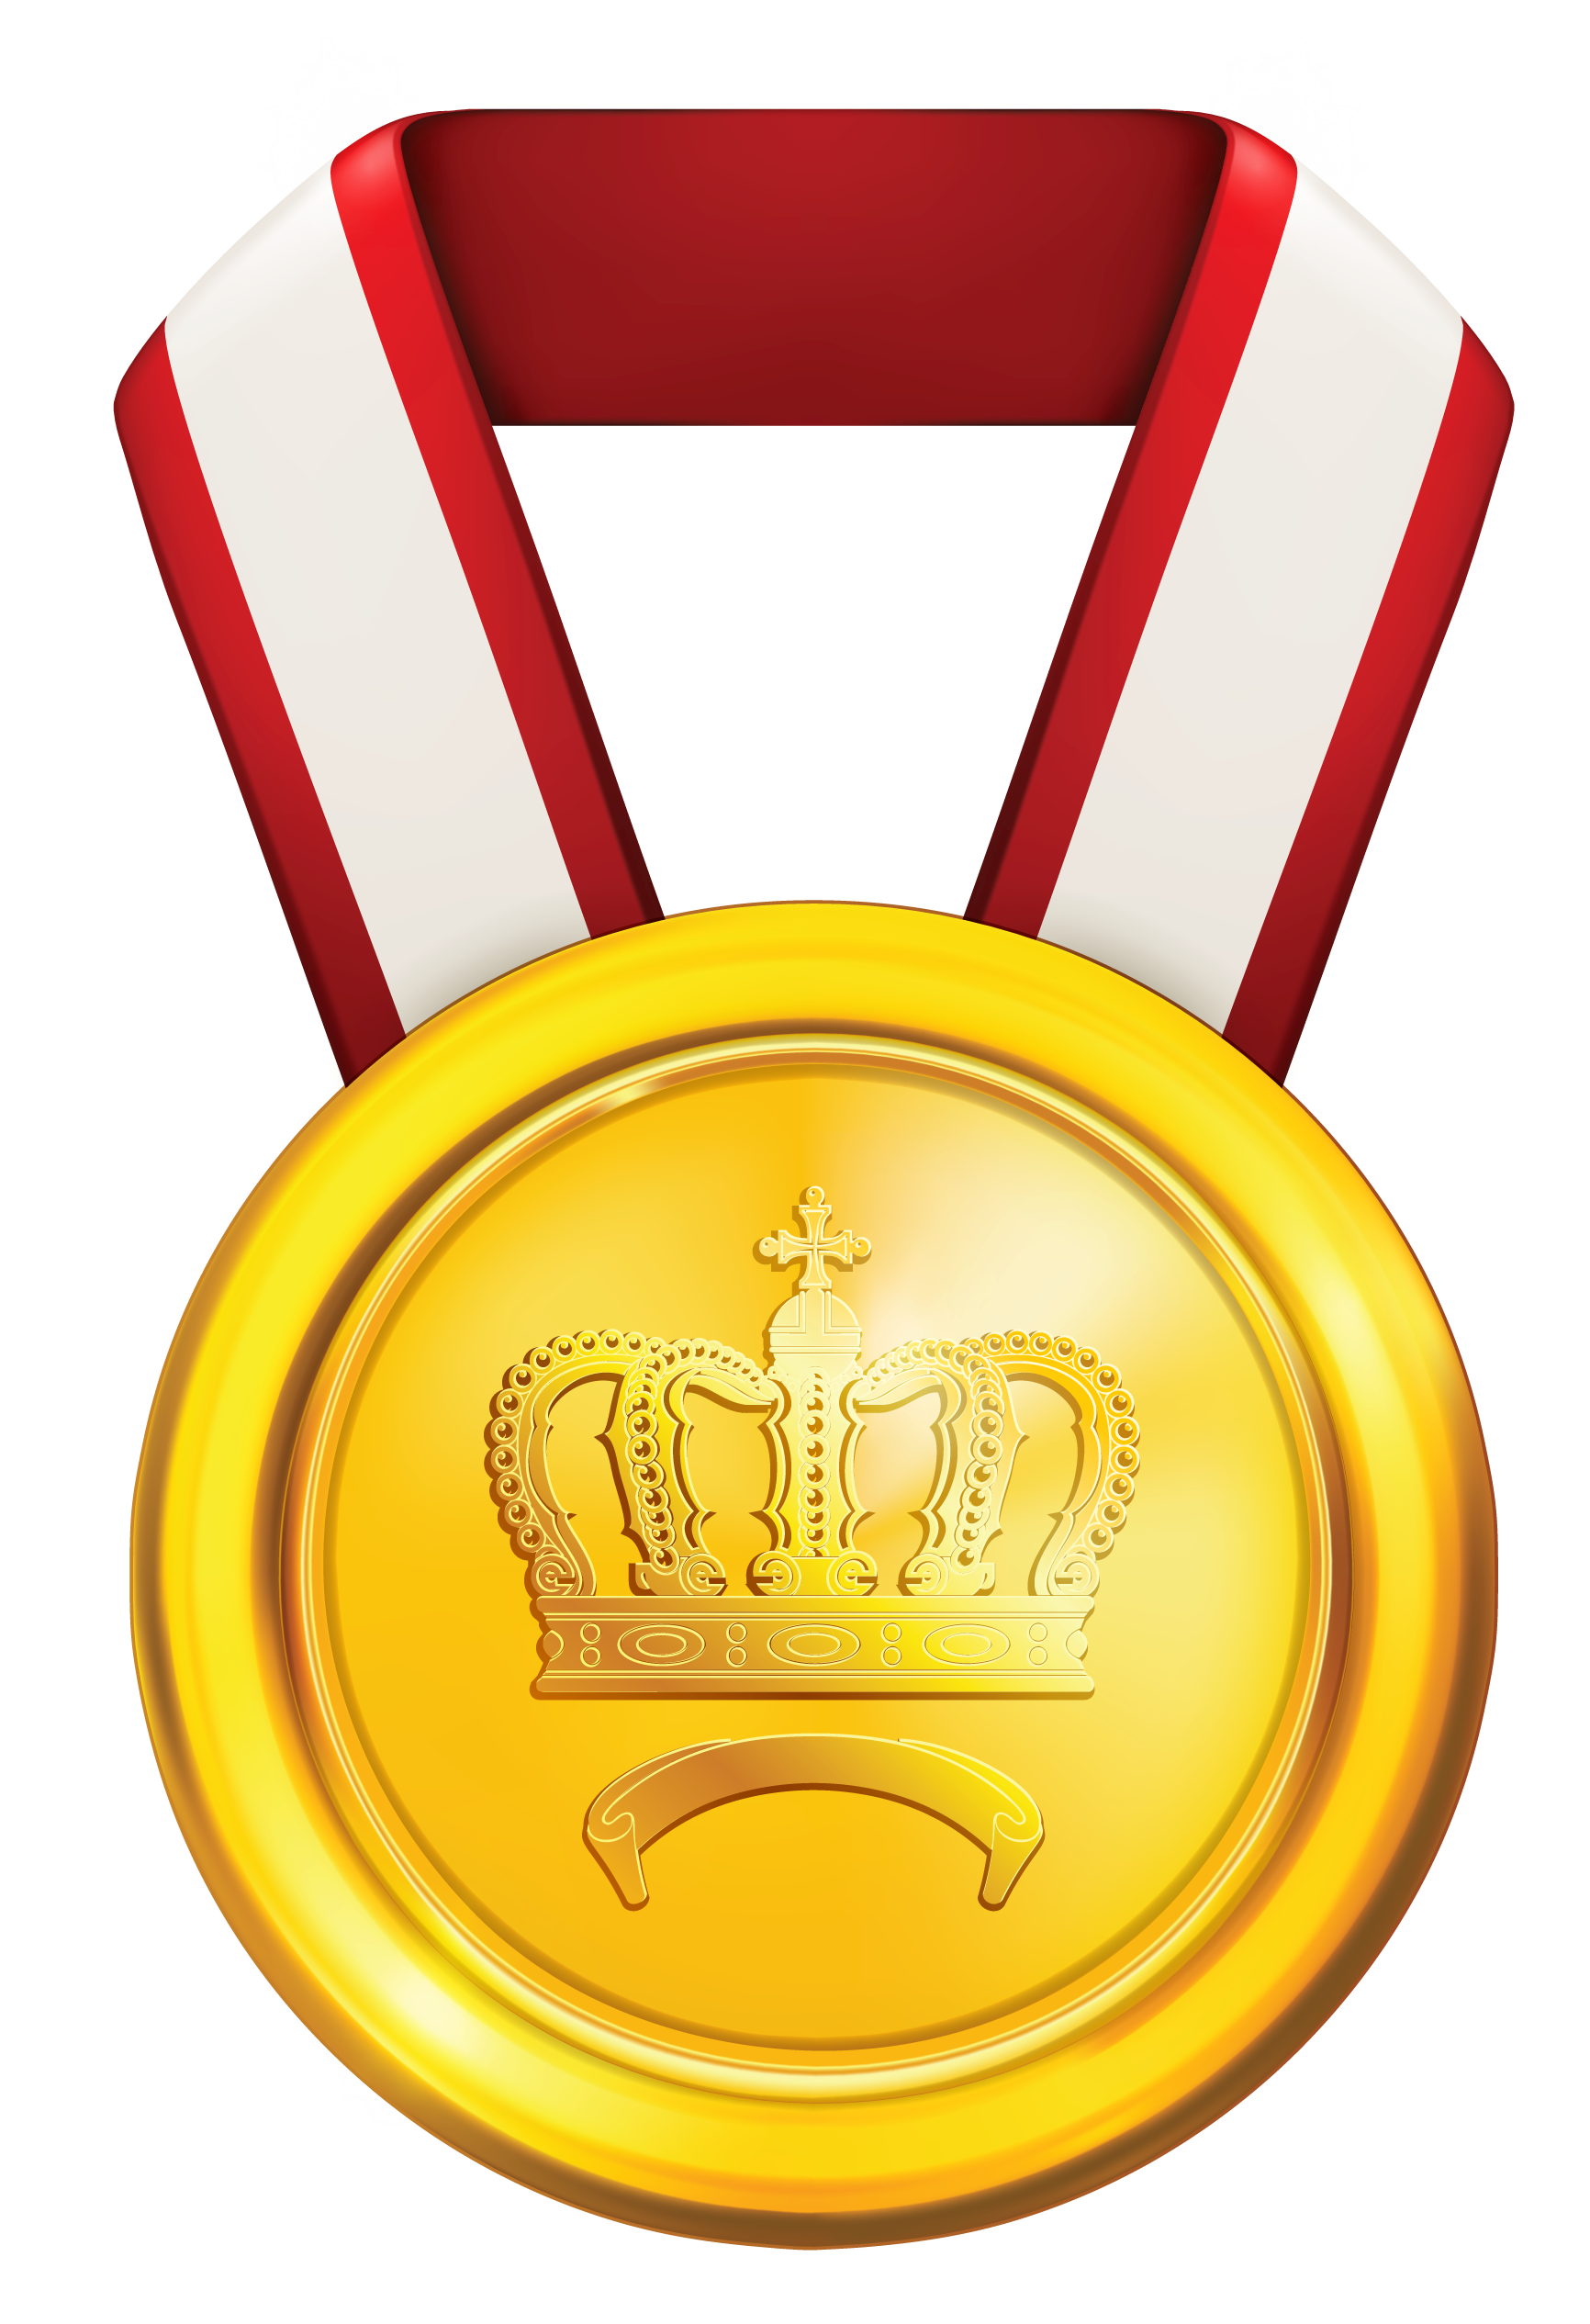 Medal clipart object. Of honor gold clip